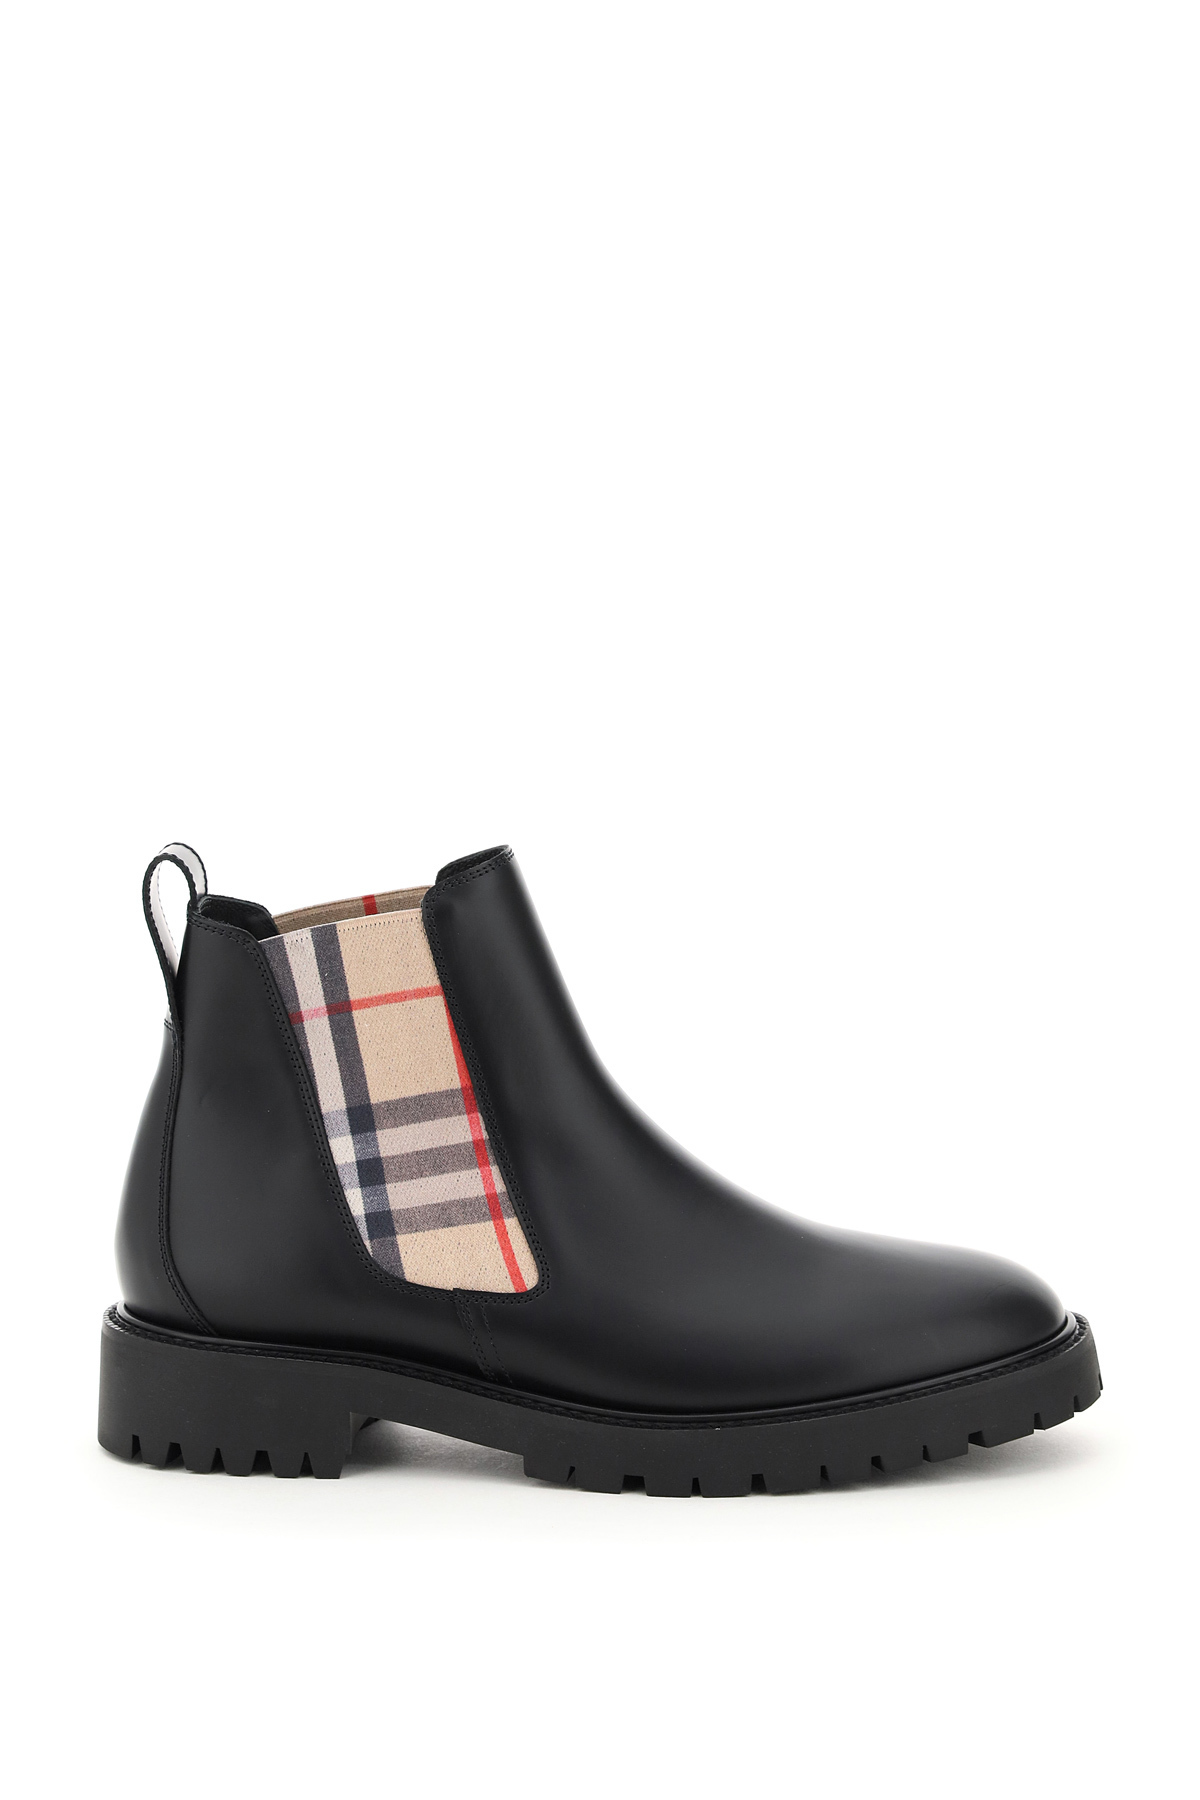 Burberry Allostock Chelsea Boots 36 Black Technical, Leather